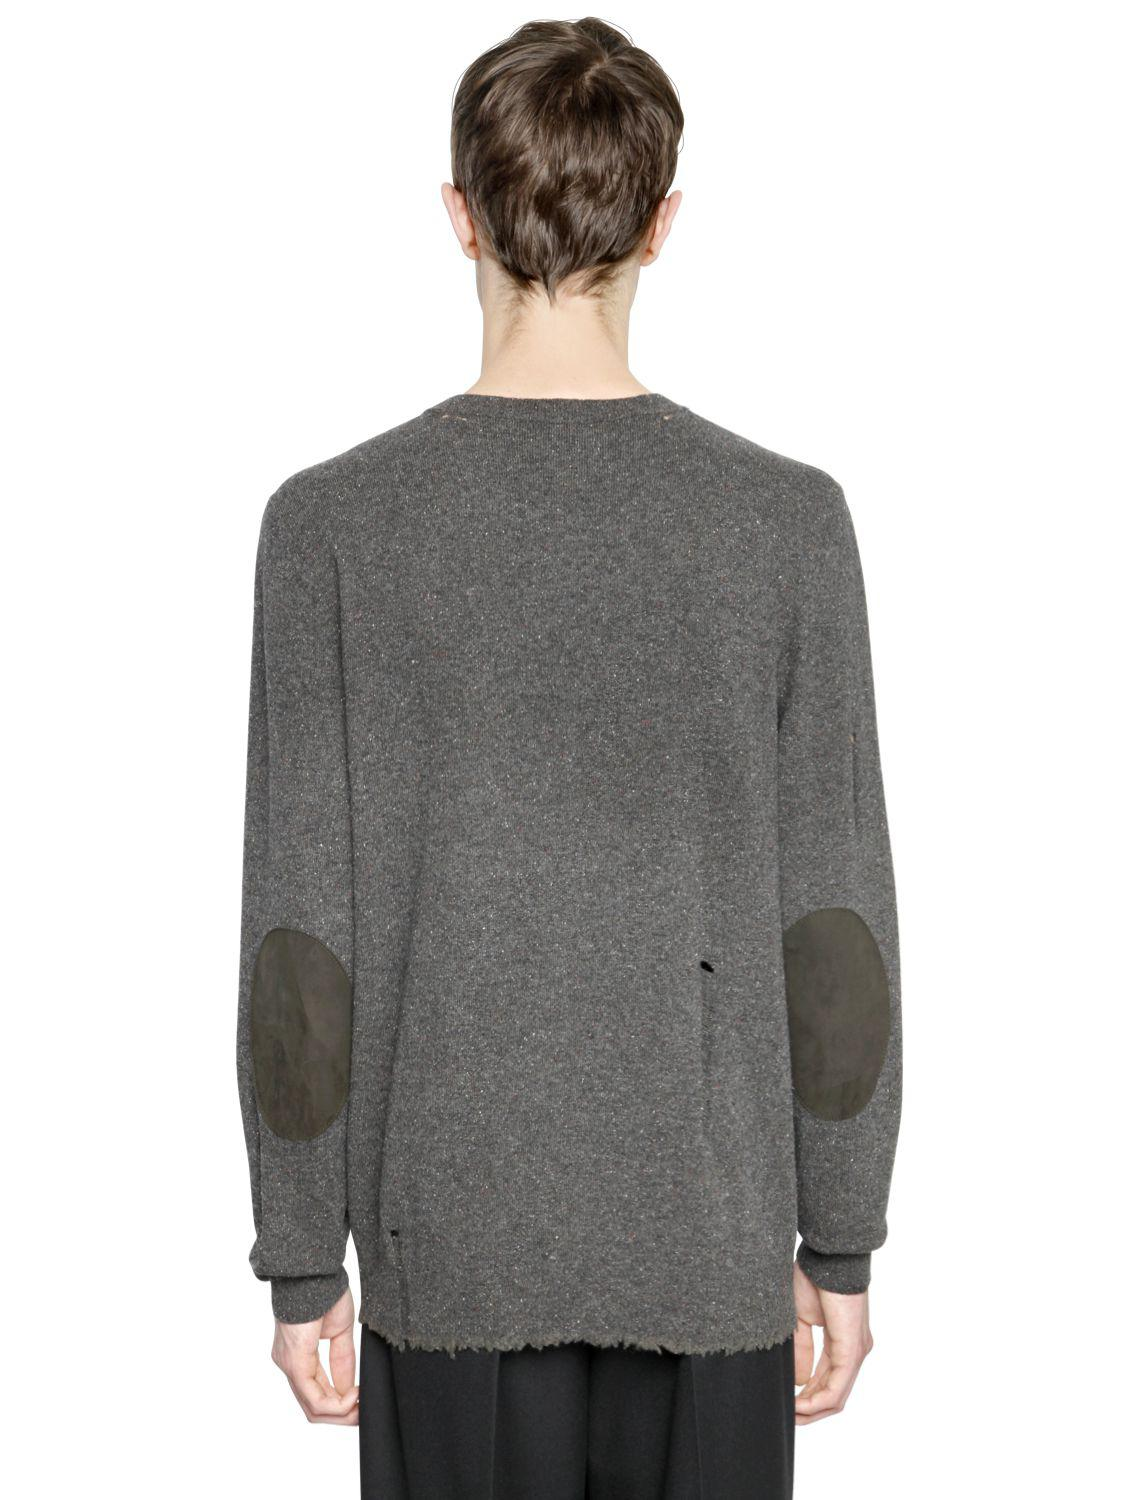 DESTROYED CREWNECK WOOL BLEND SWEATER